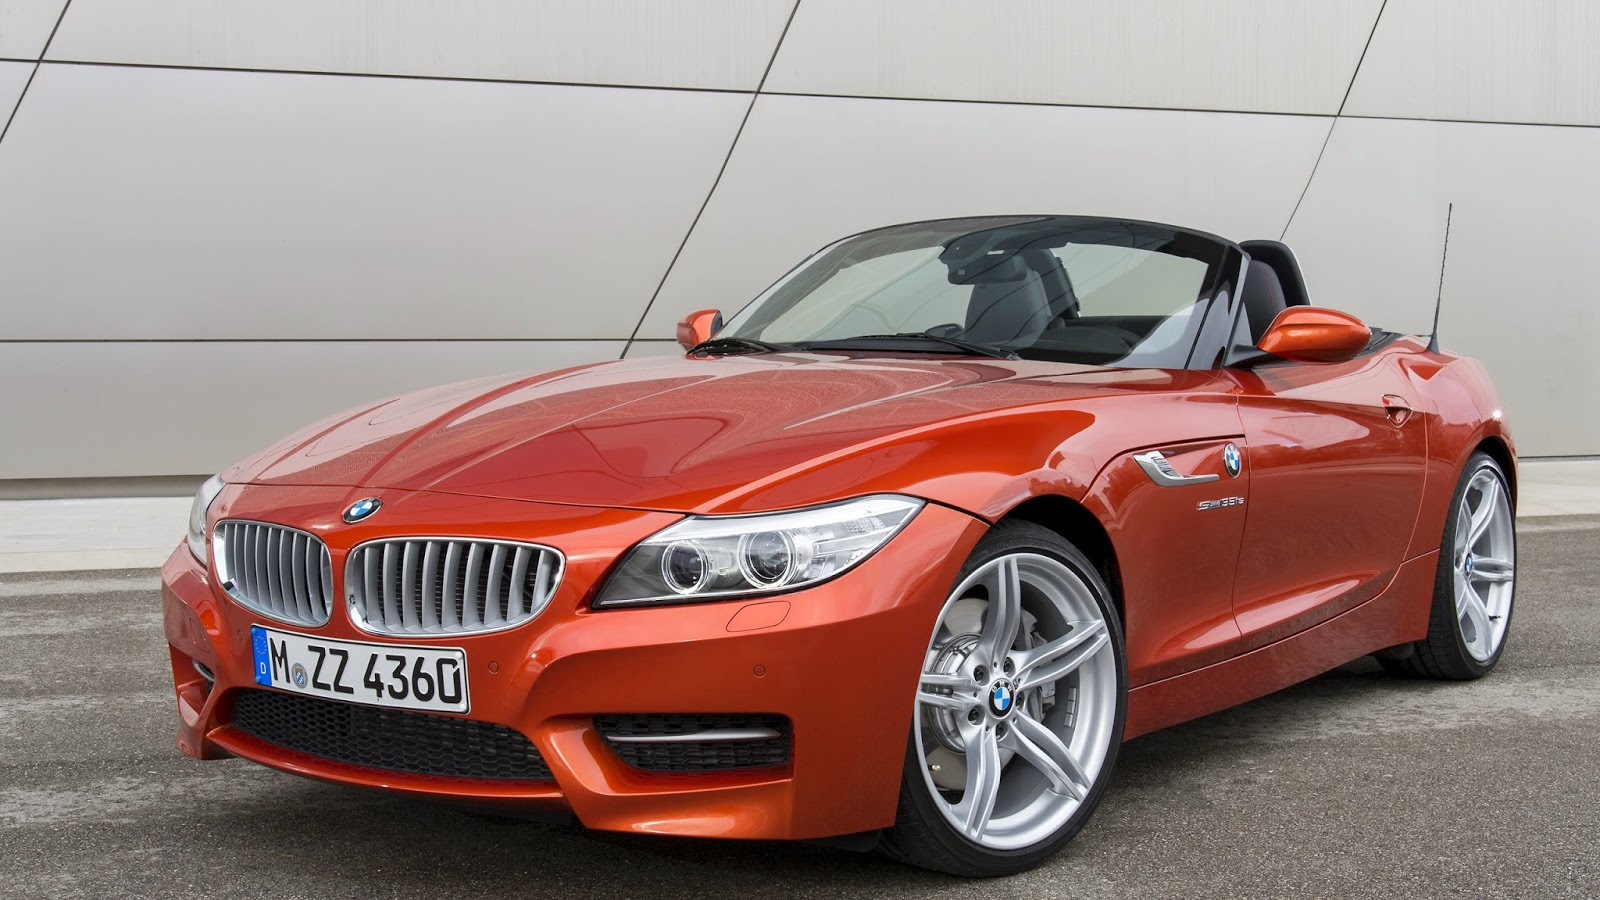 Wallpaper Mobil Mewah BMW Z4 35is